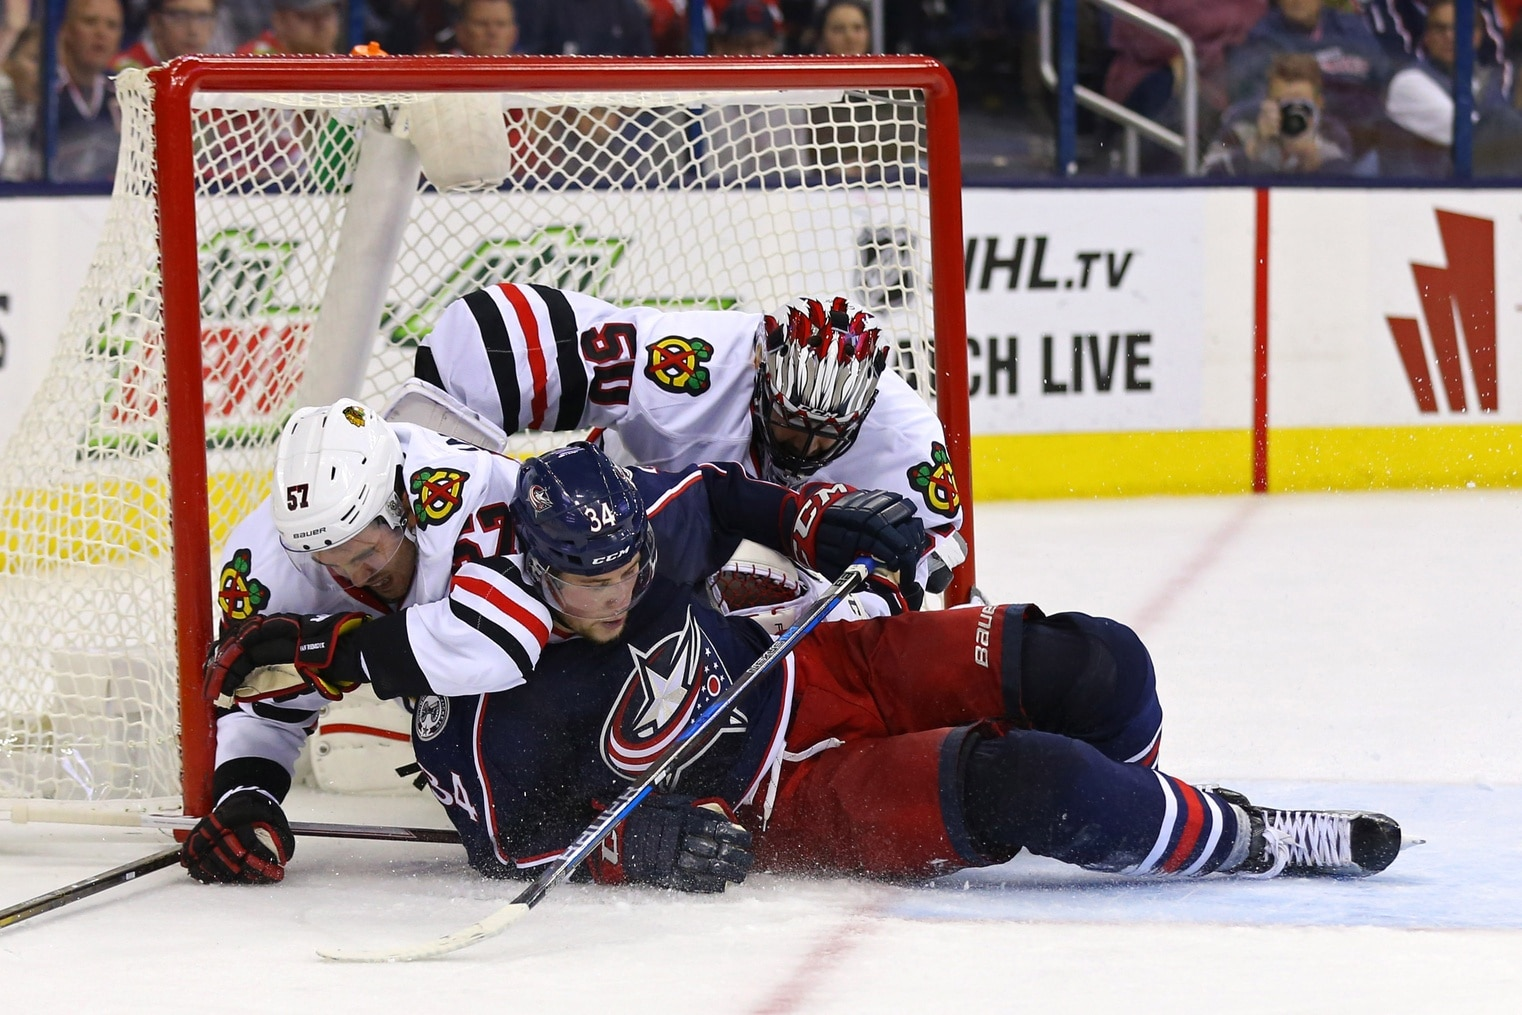 ; Columbus Blue Jackets right wing Josh Anderson (34) collides with Chicago Blackhawks defenseman Trevor van Riemsdyk (57) and goalie Corey Crawford (50) in net in the second period at Nationwide Arena. Mandatory Credit: Aaron Doster-USA TODAY Sports